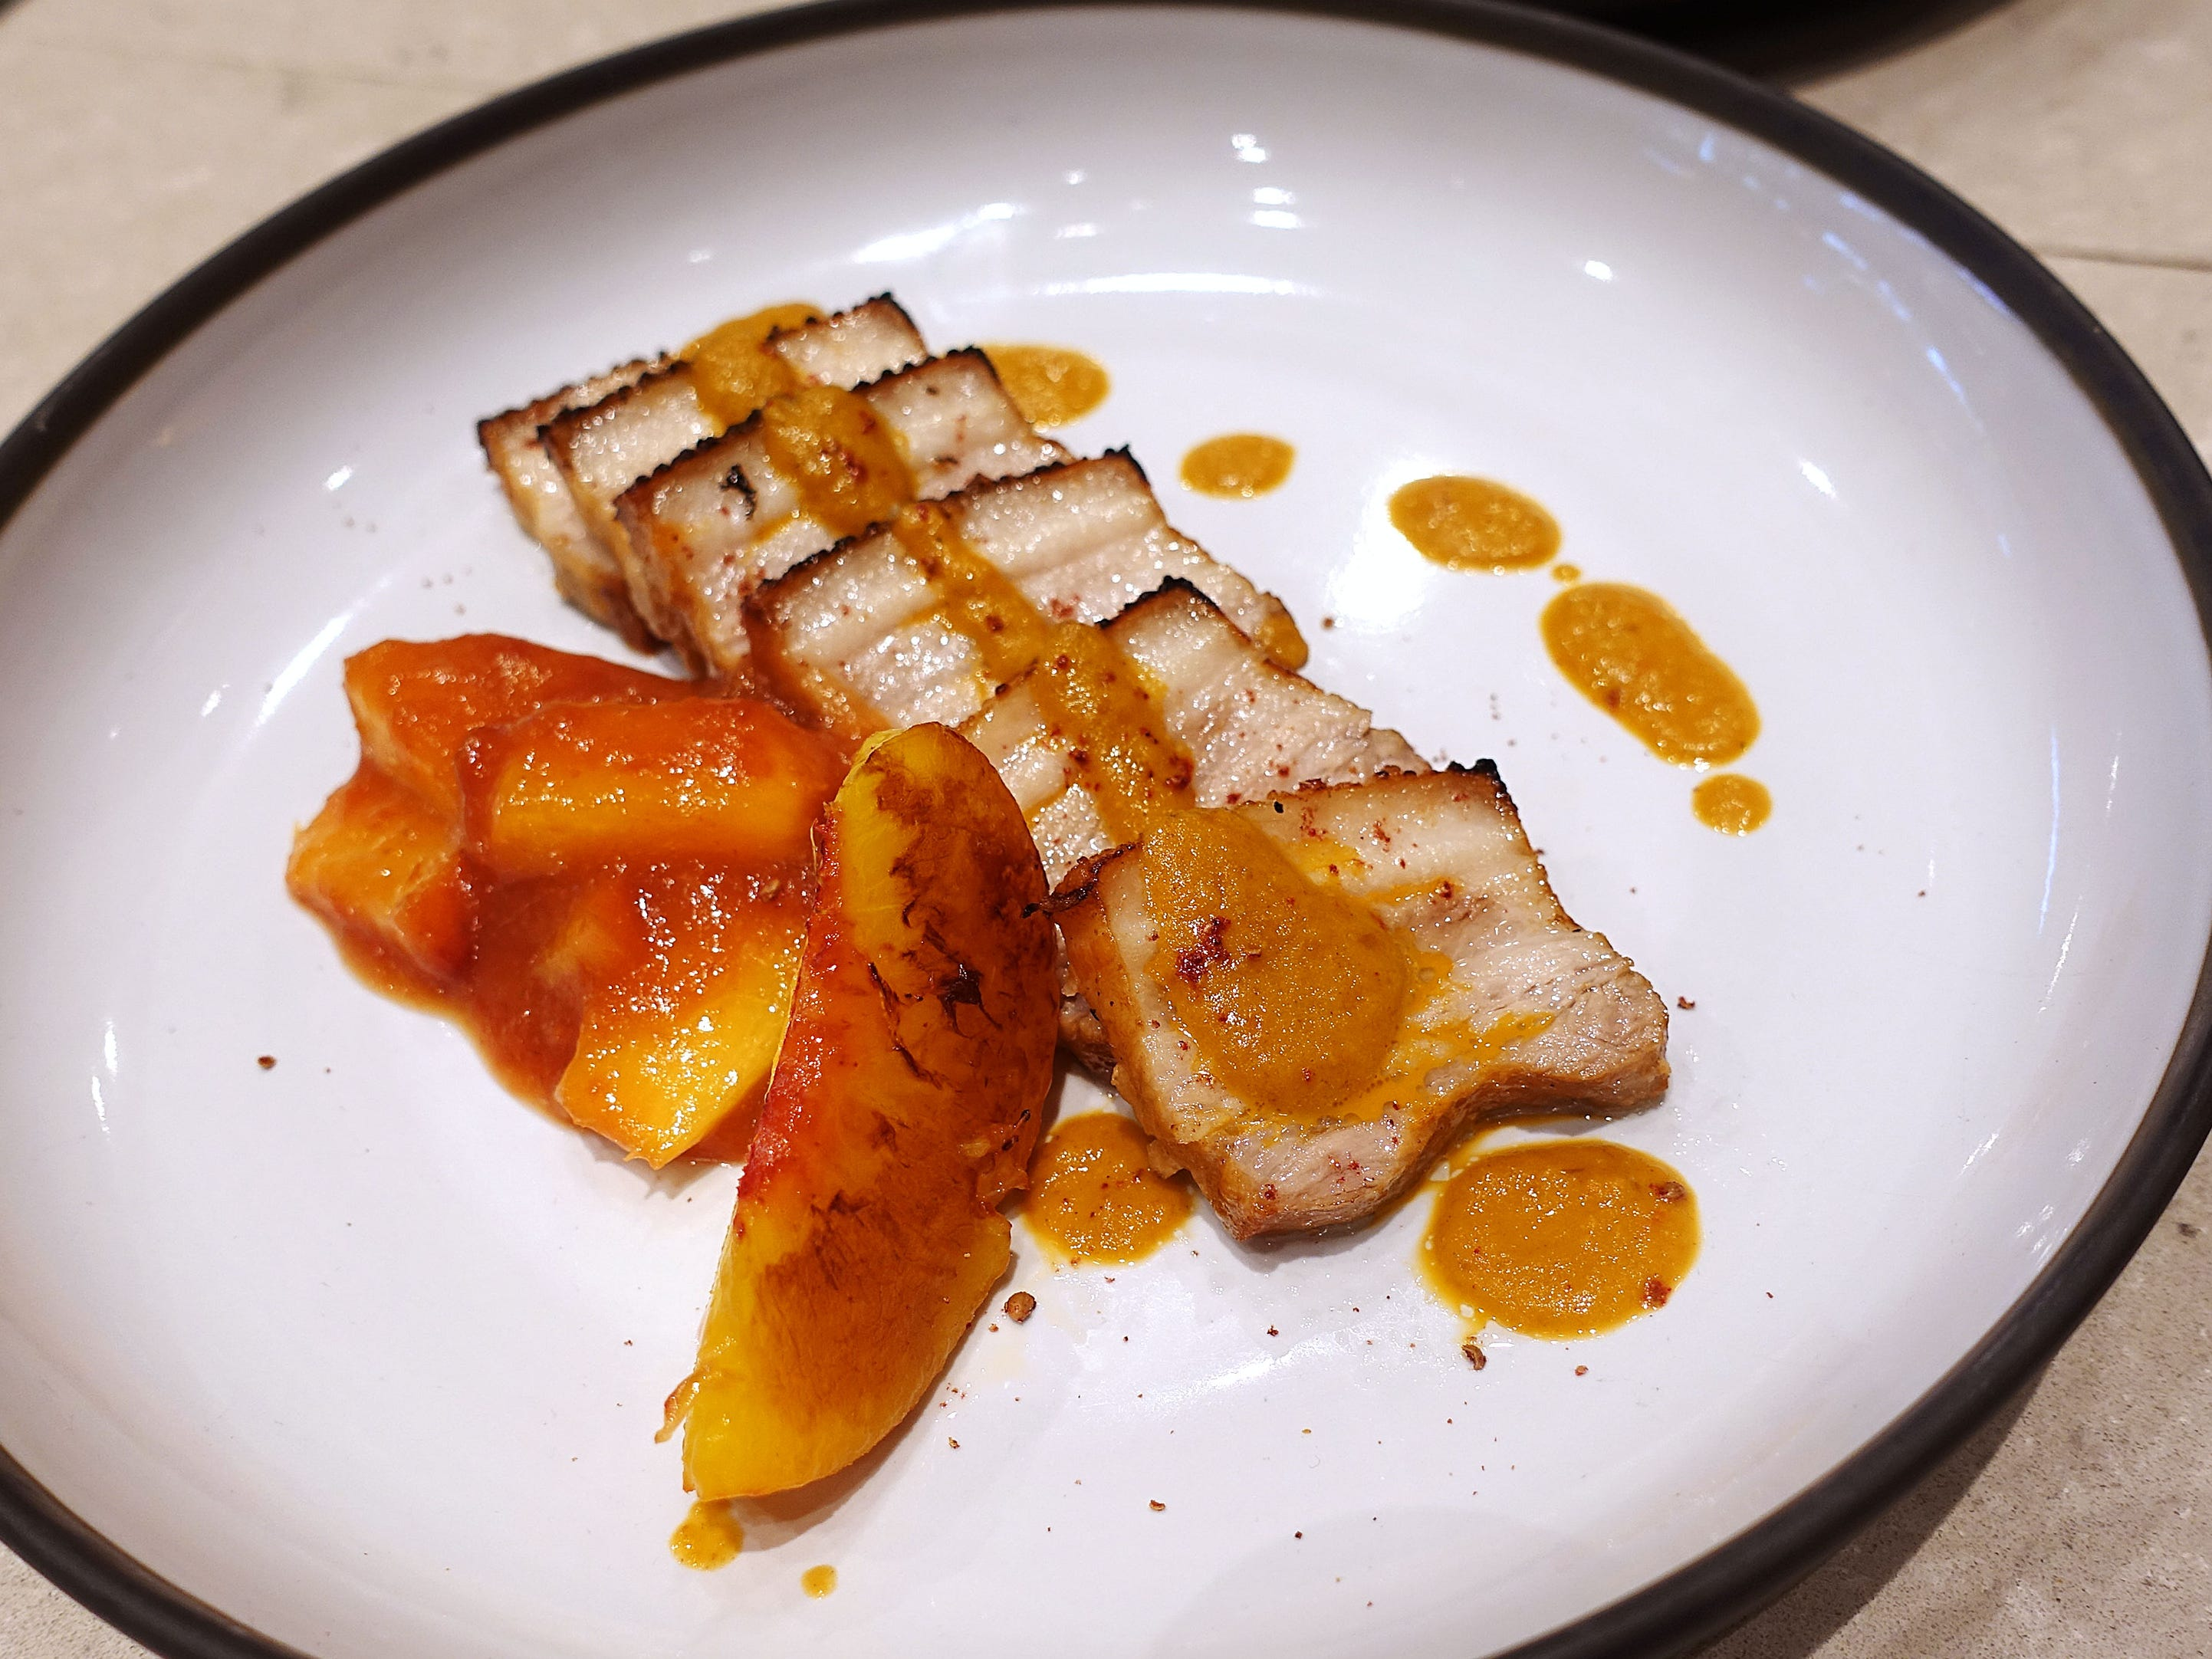 Buttermilk braised pork belly with orange-peach marmalade and sumac hot sauce at Mowry & Cotton in Phoenix.